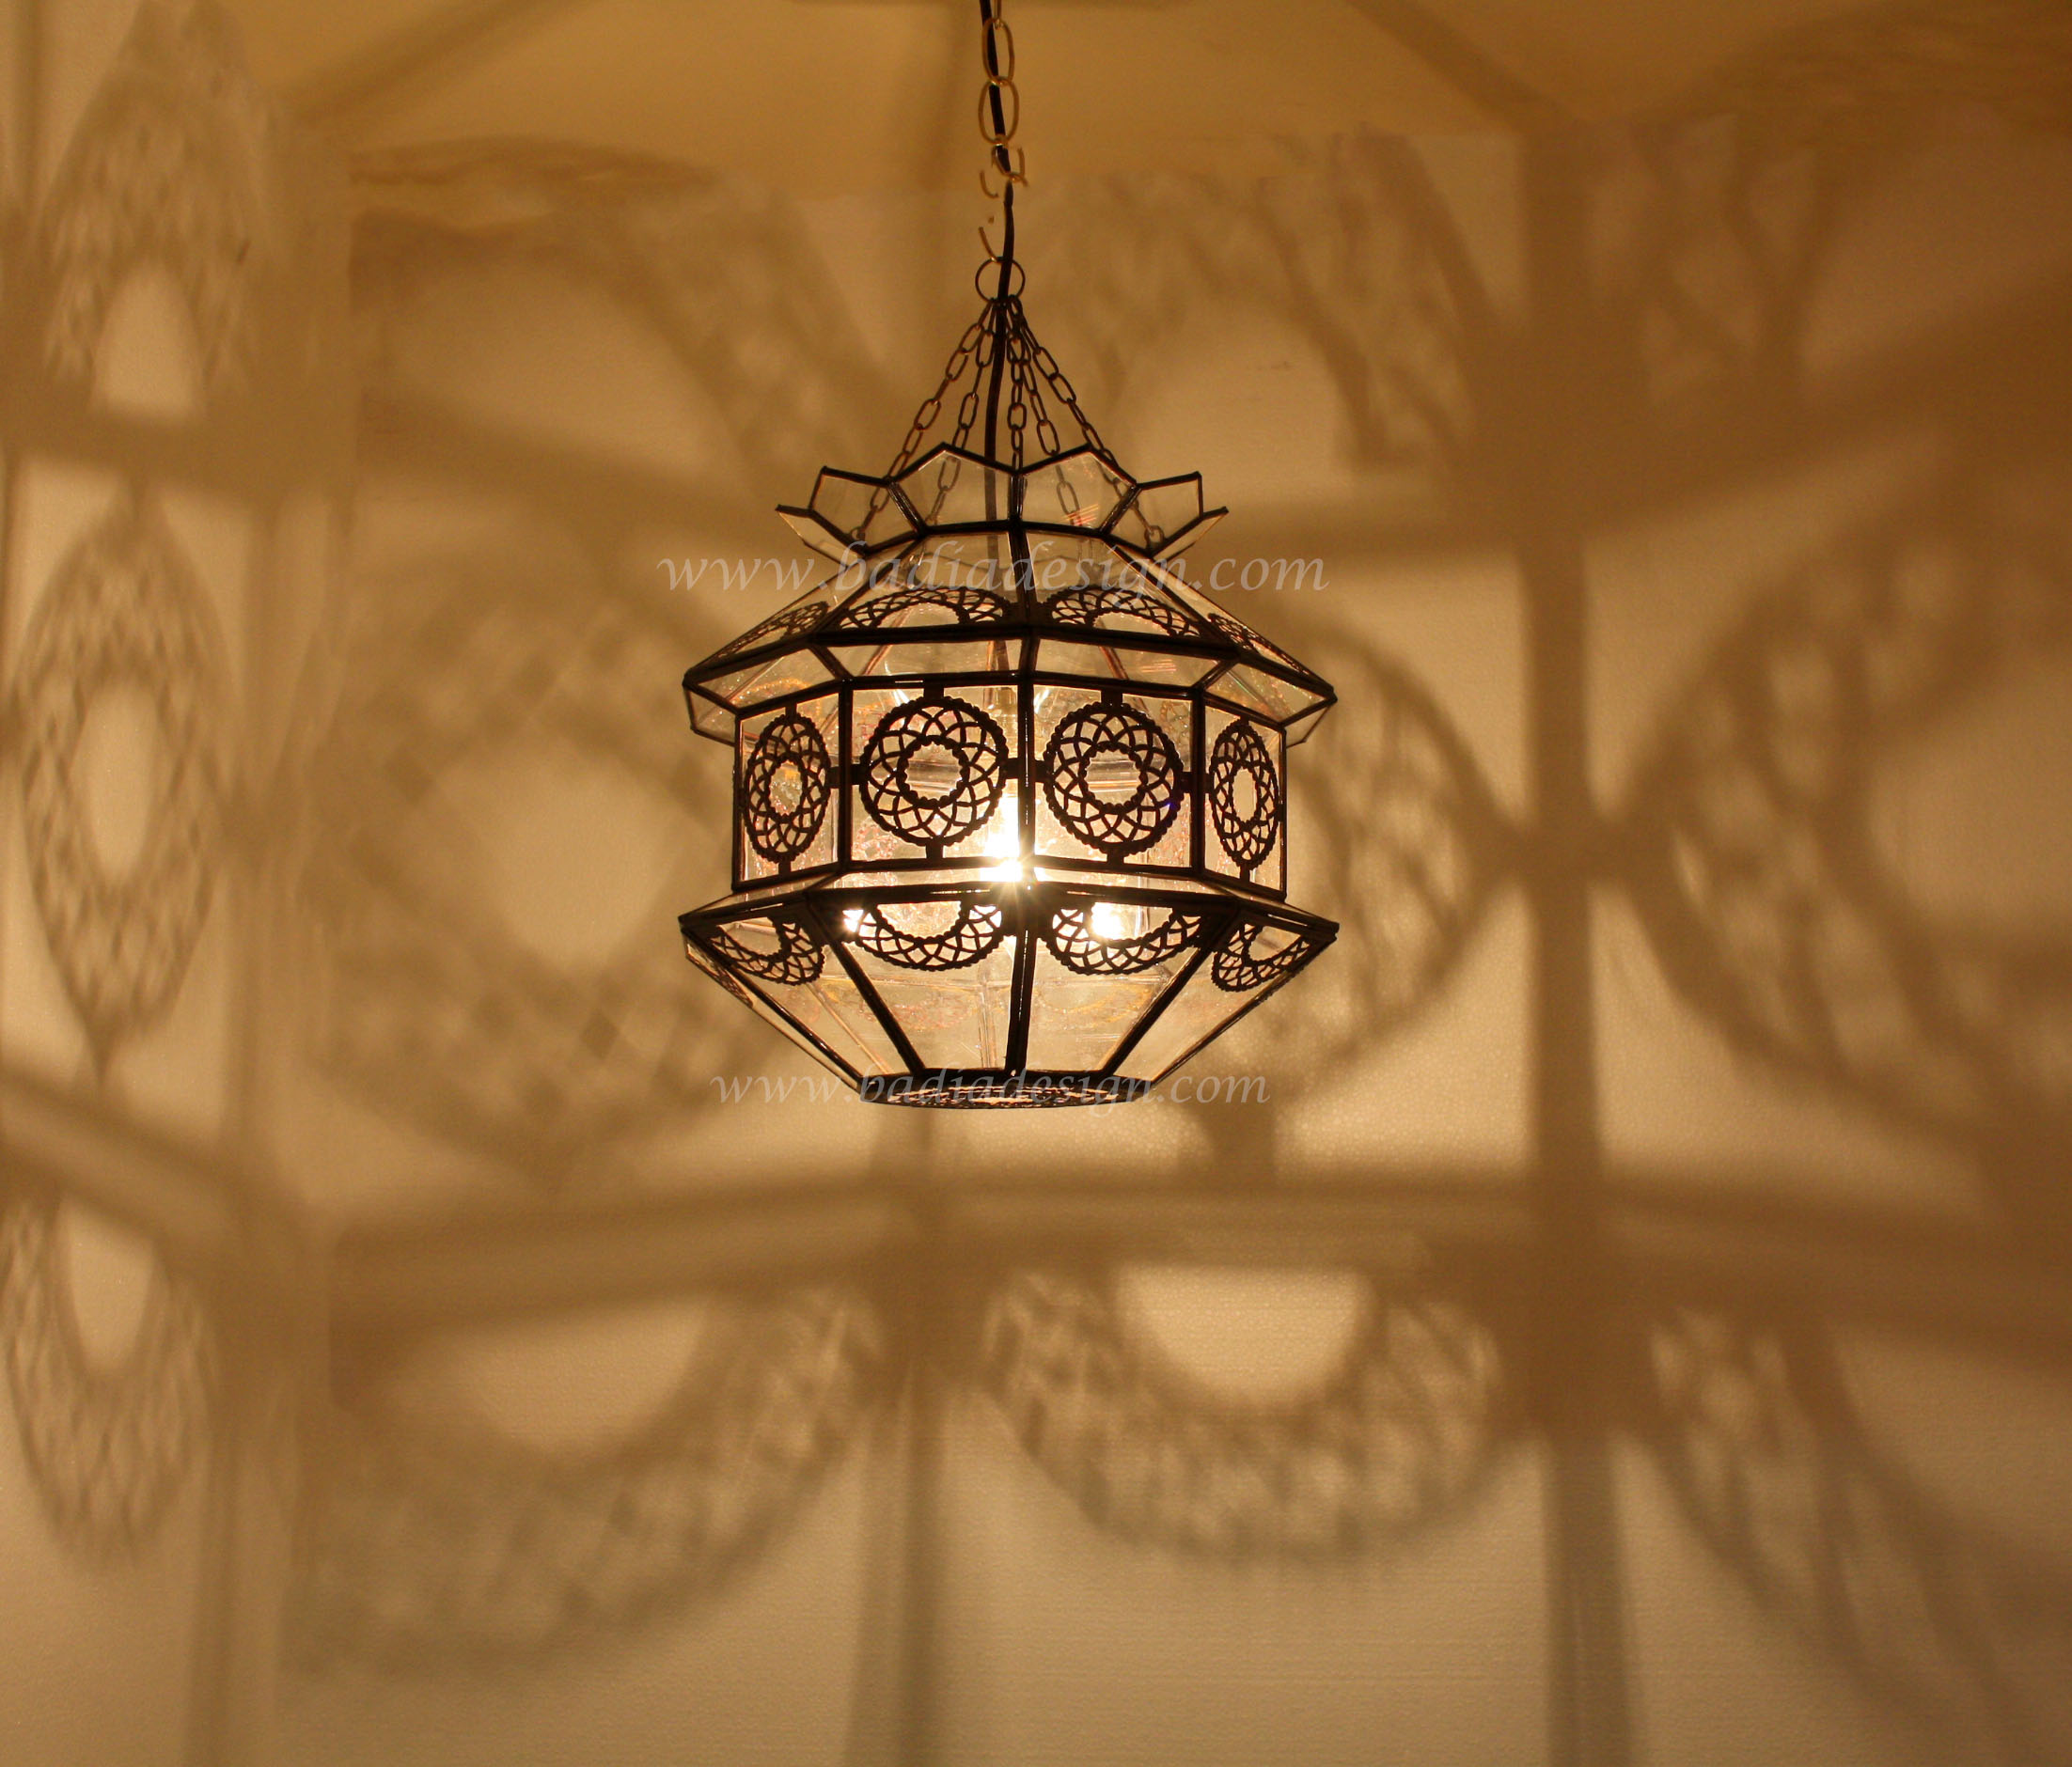 Lamps Colorado Springs: Moroccan Hanging Lantern With Clear And White Glass From